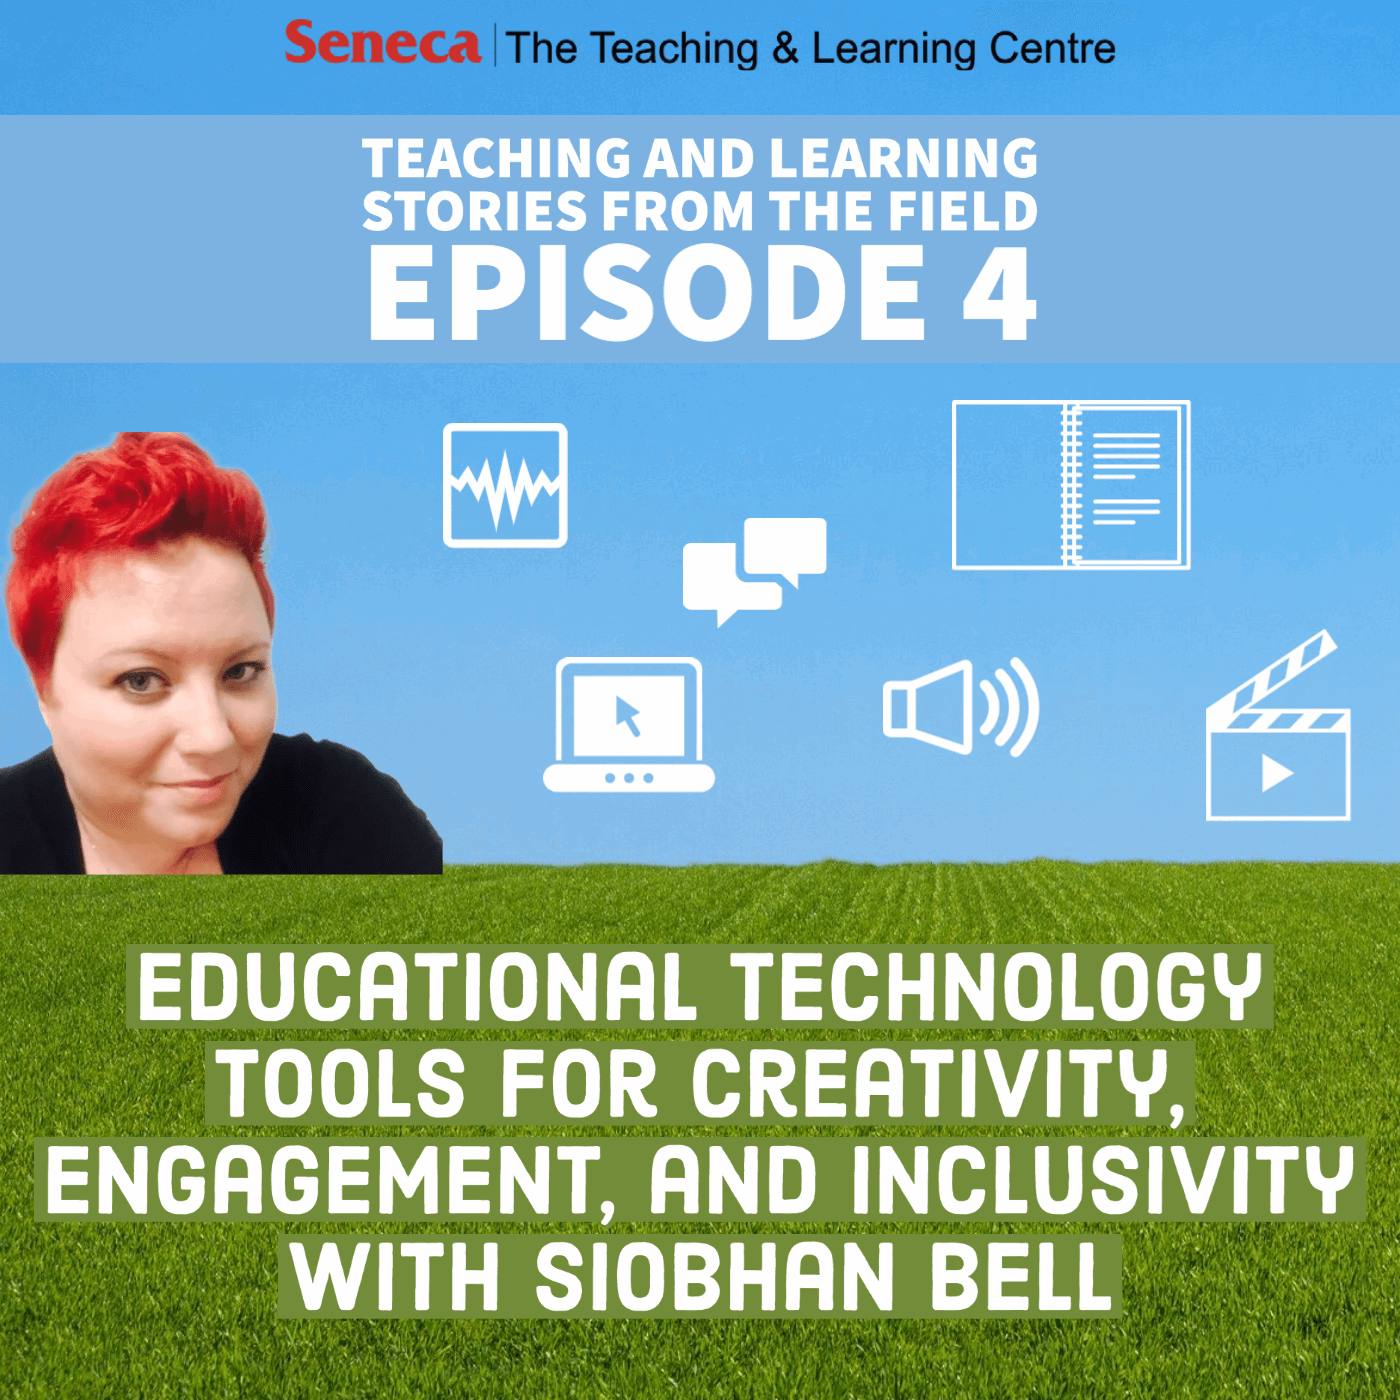 Episode 4 of the Teaching and Learning Stores podcast is called Educational Technology Tools to Improve Engagement, Creativity, and Inclusivity with Siobhan Bell